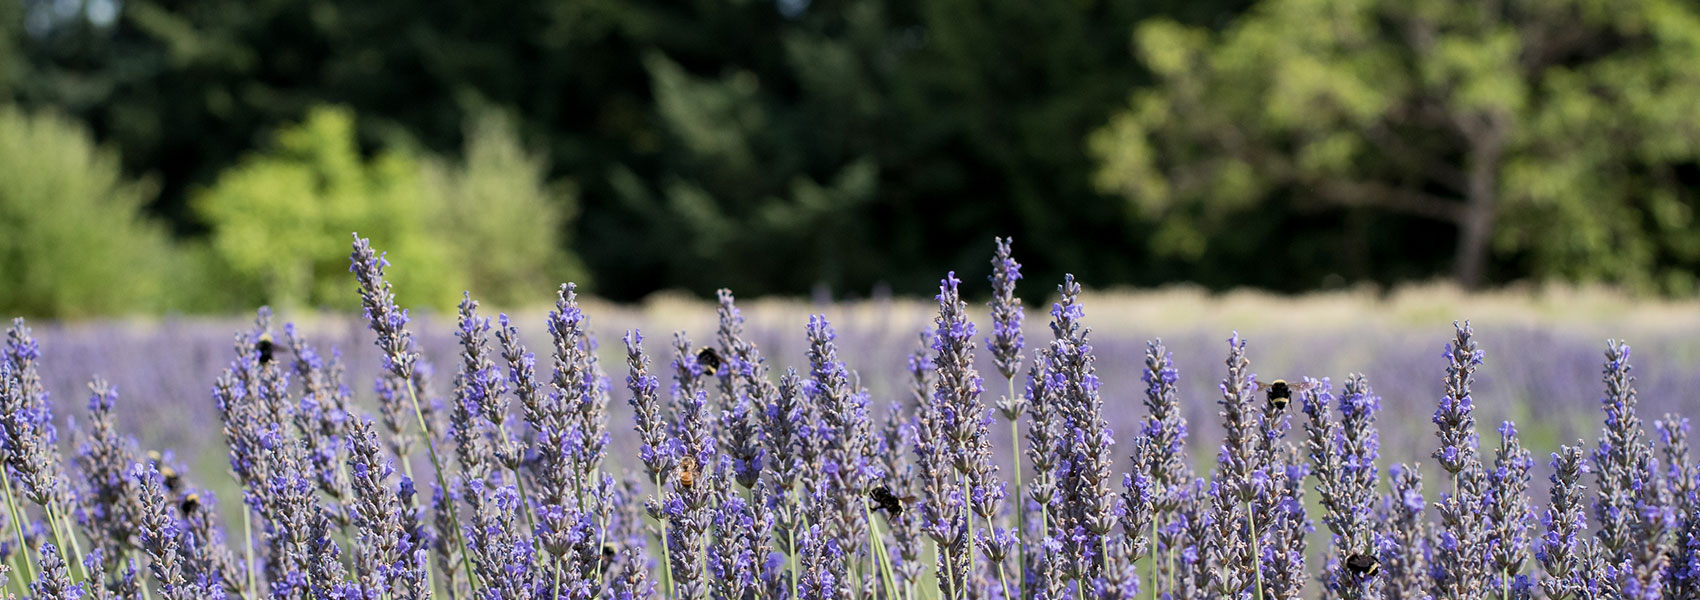 mountainside-lavender- banner